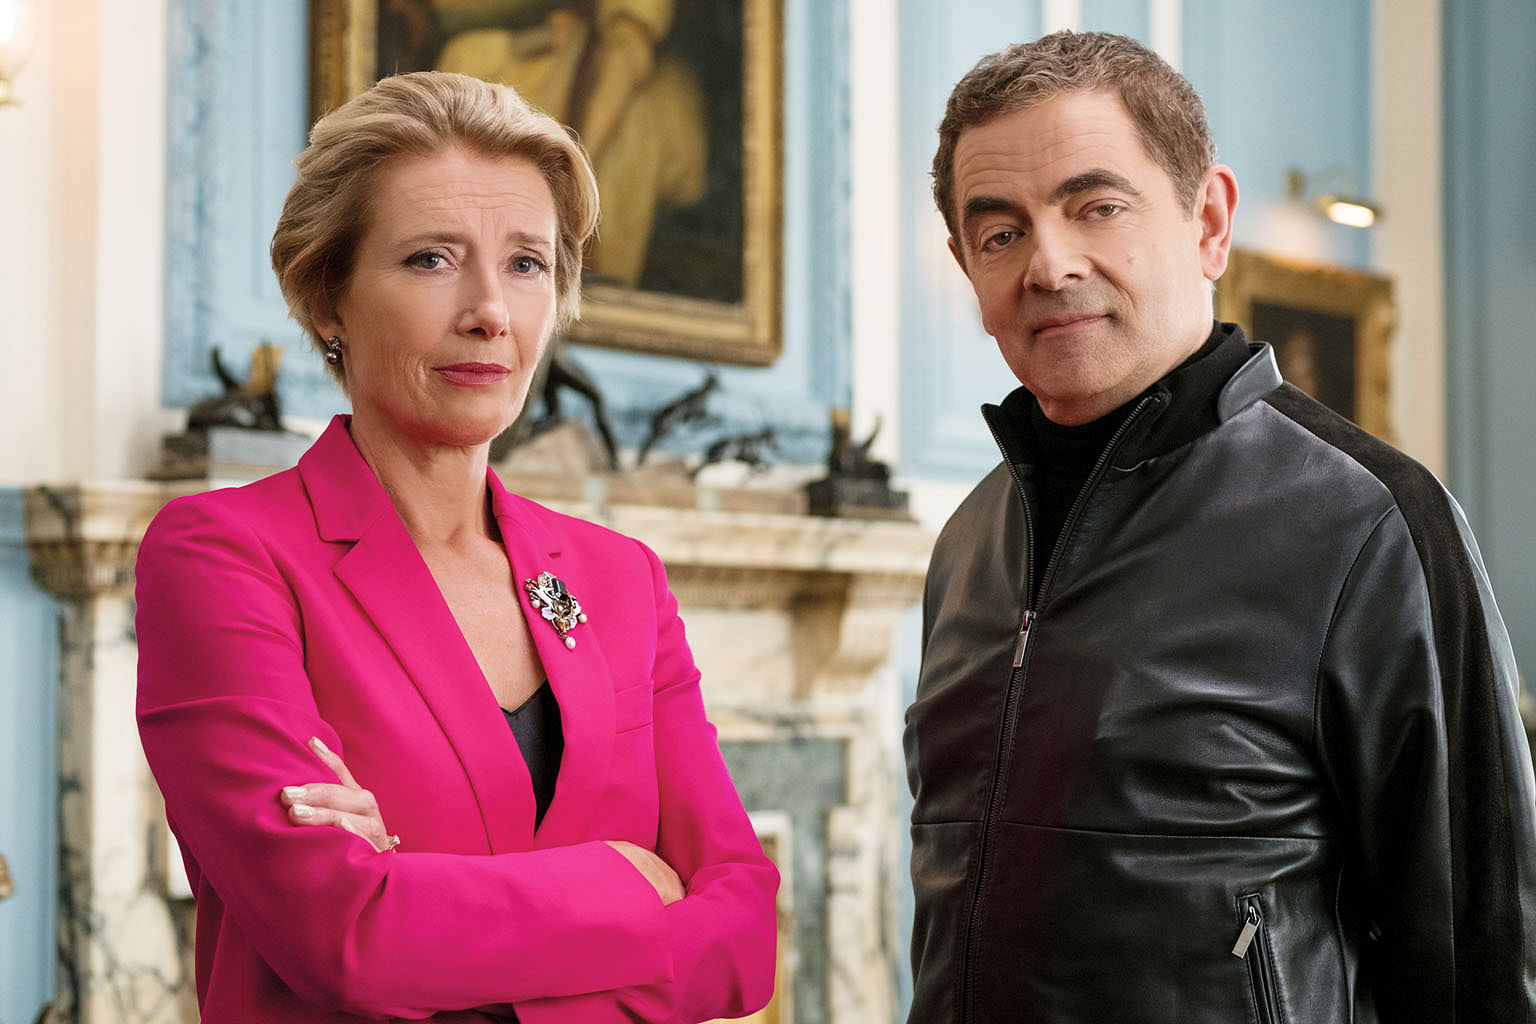 Emma Thompson (above, left) joins Rowan Atkinson, who plays the British secret service's last hope, in Johnny English Strikes Again (right).